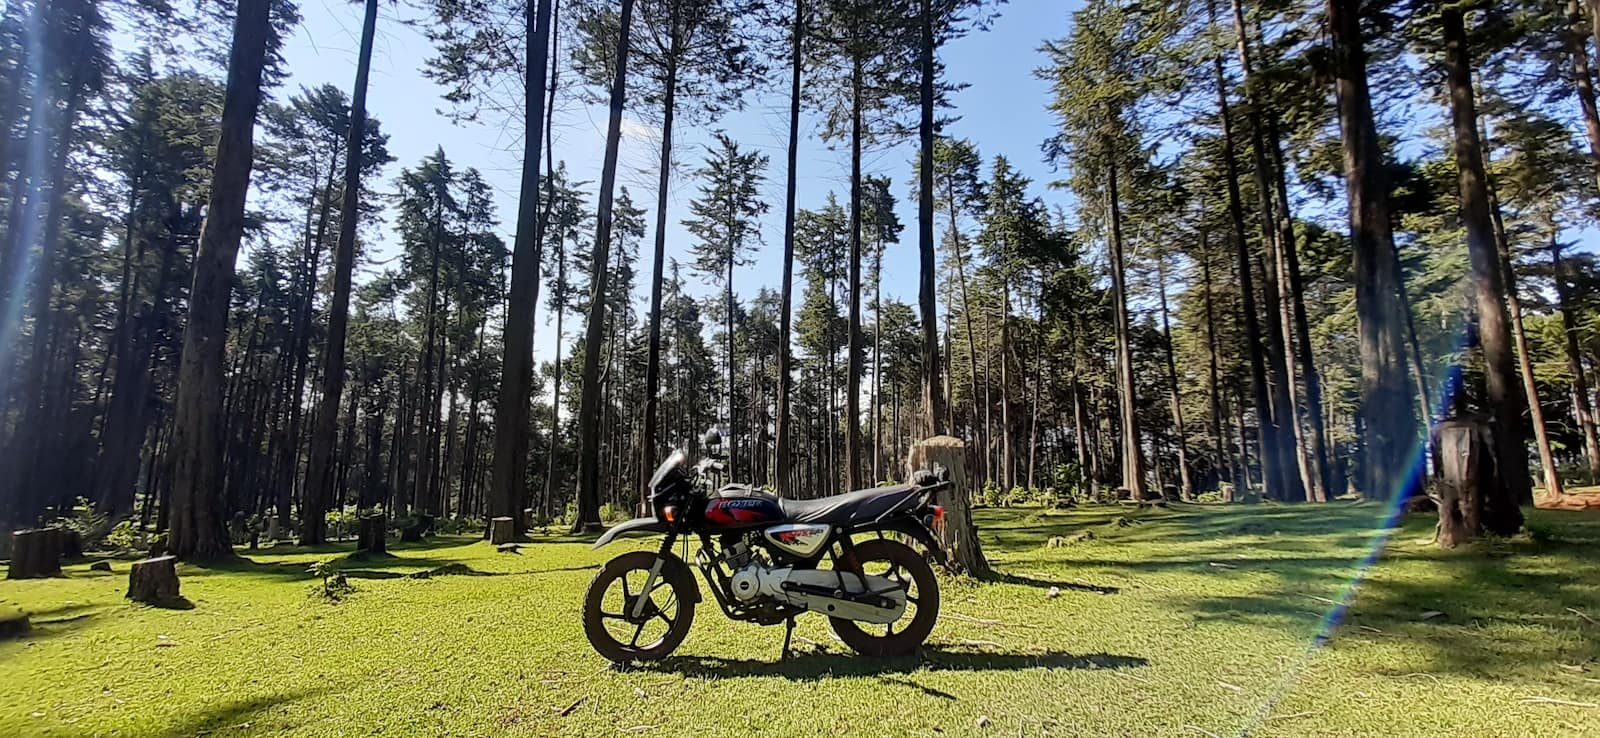 Why learn to ride a motorcycle for adventure travel in Africa, Asia, the Middle East and Latin America